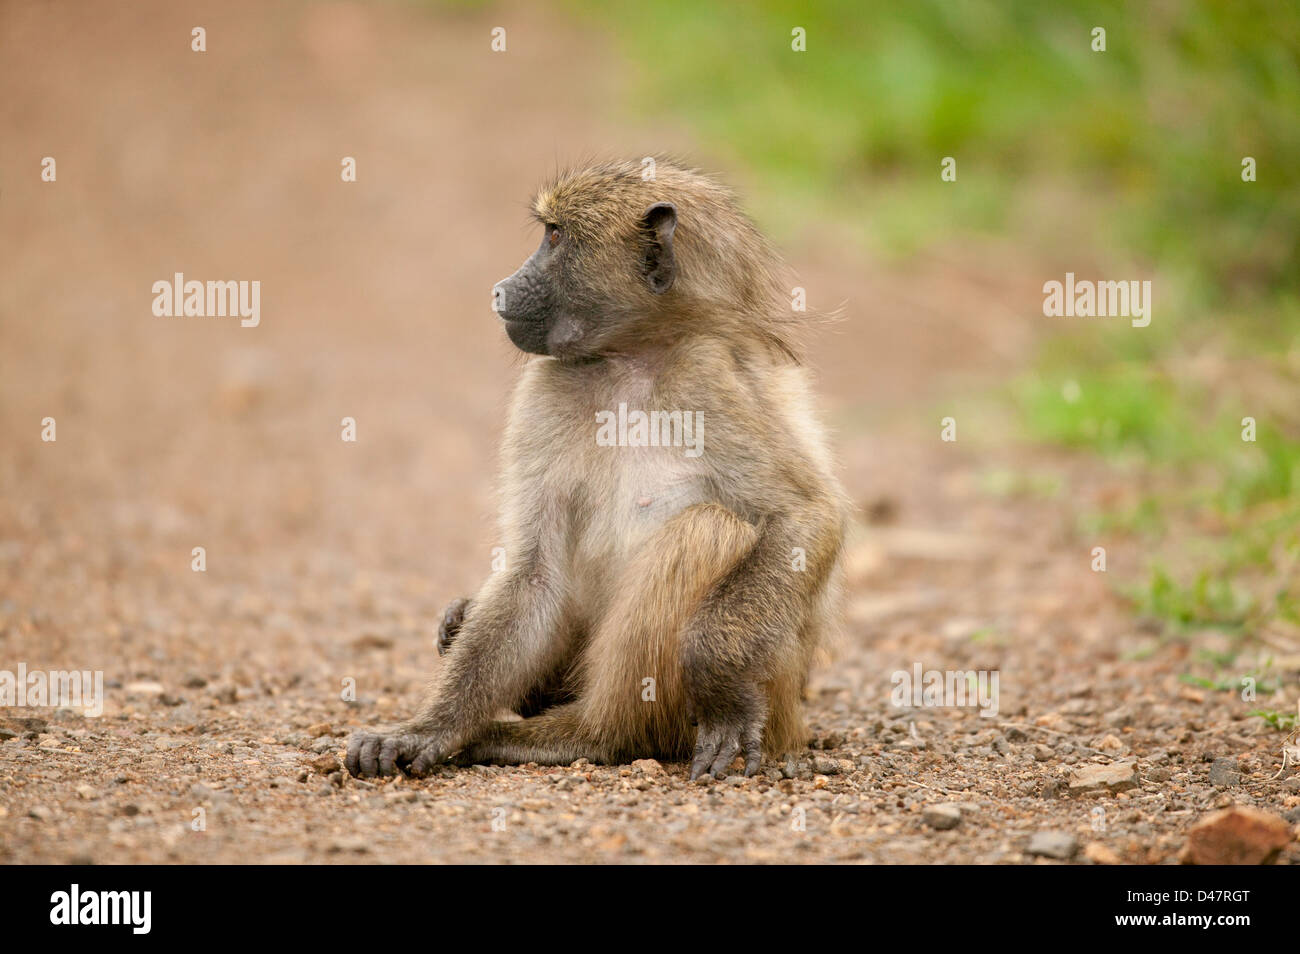 Chacma baboon or Cape baboon (Papio ursinus), sitting scratching nonchalantly looking to the side - Stock Image